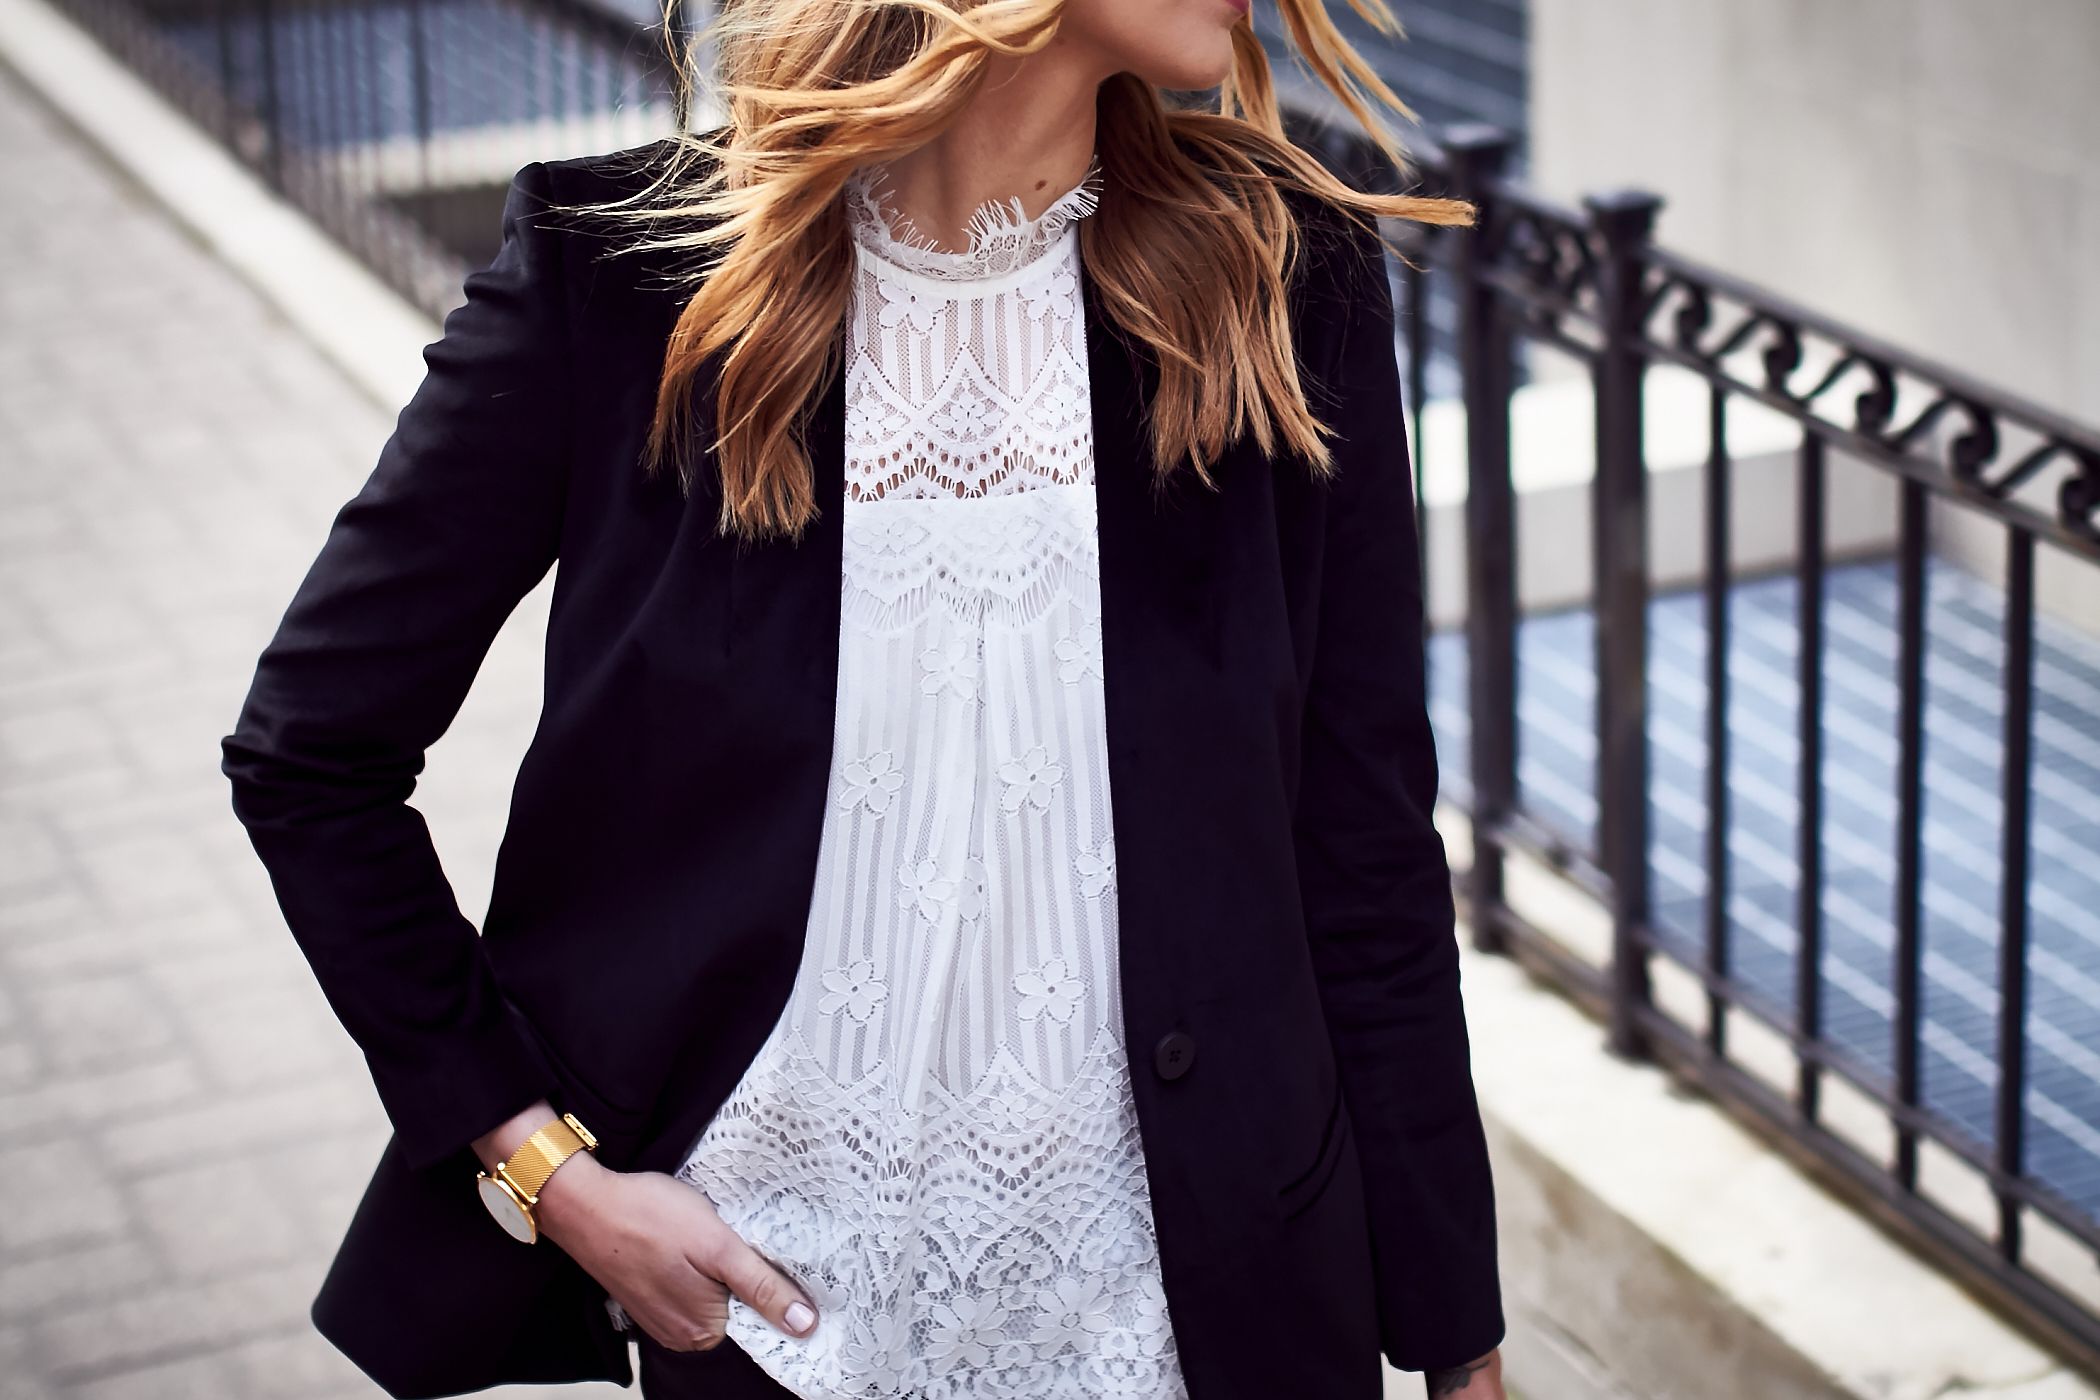 Fall Outfit, Holiday Outfit, White Lace Top, Black Velvet Blazer